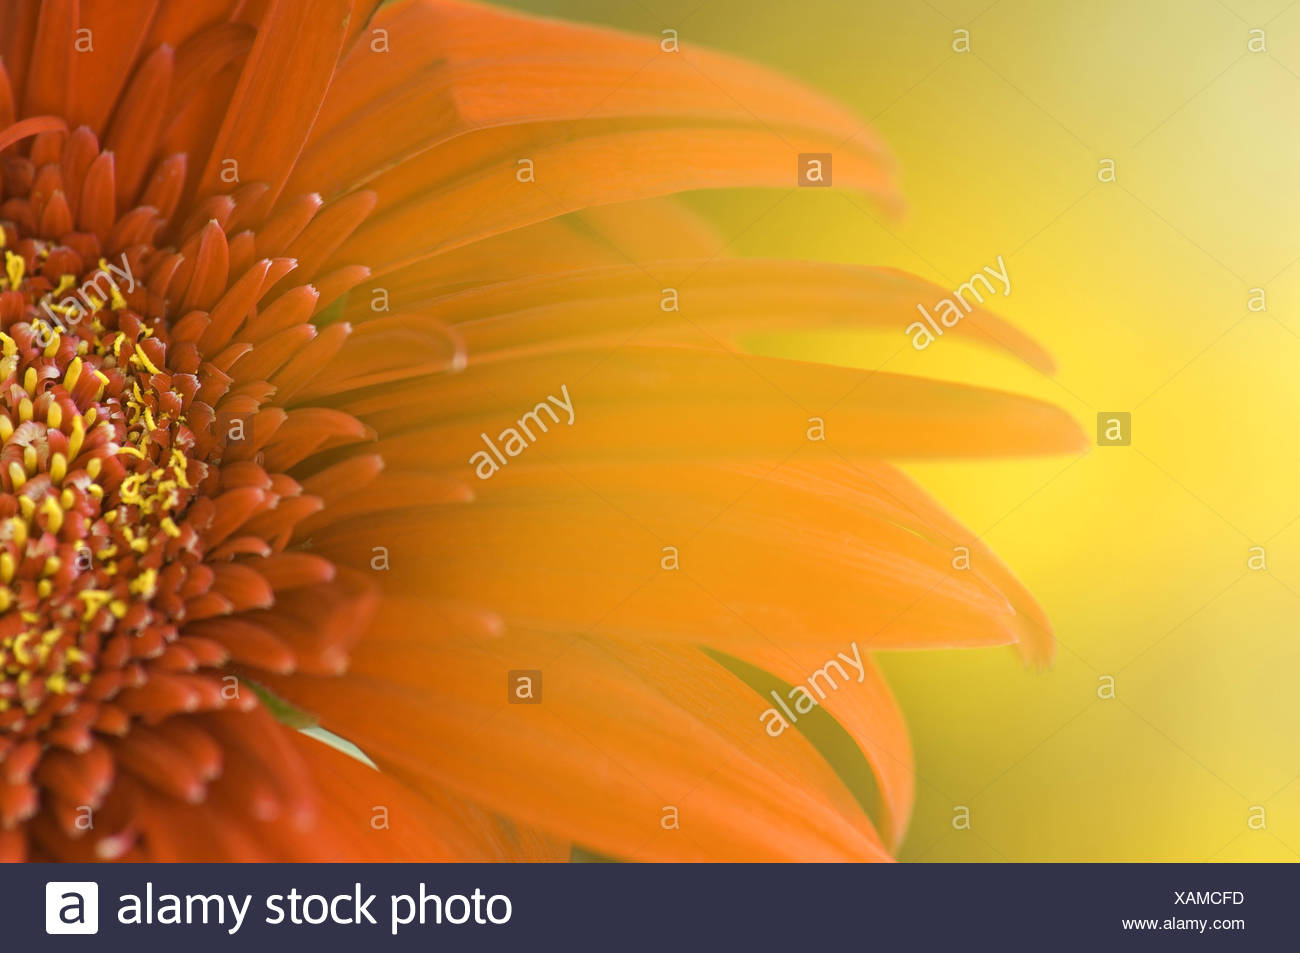 Detailed view of flower - Stock Image